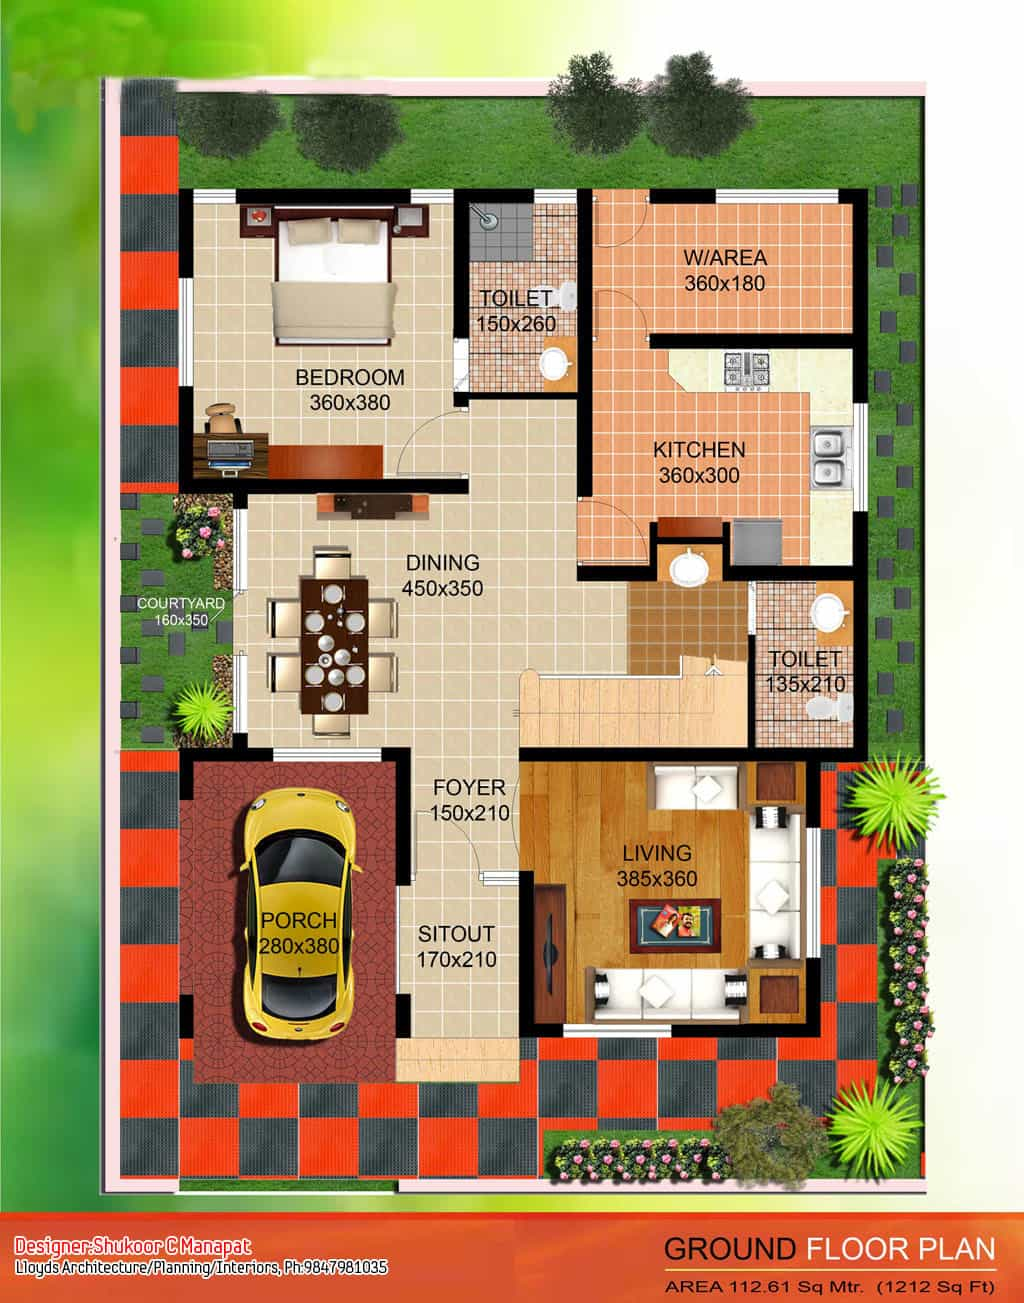 ground floor kerala style contemporary villa elevation and plan at 2035 sq ft,Floor Plans Kerala Style Houses